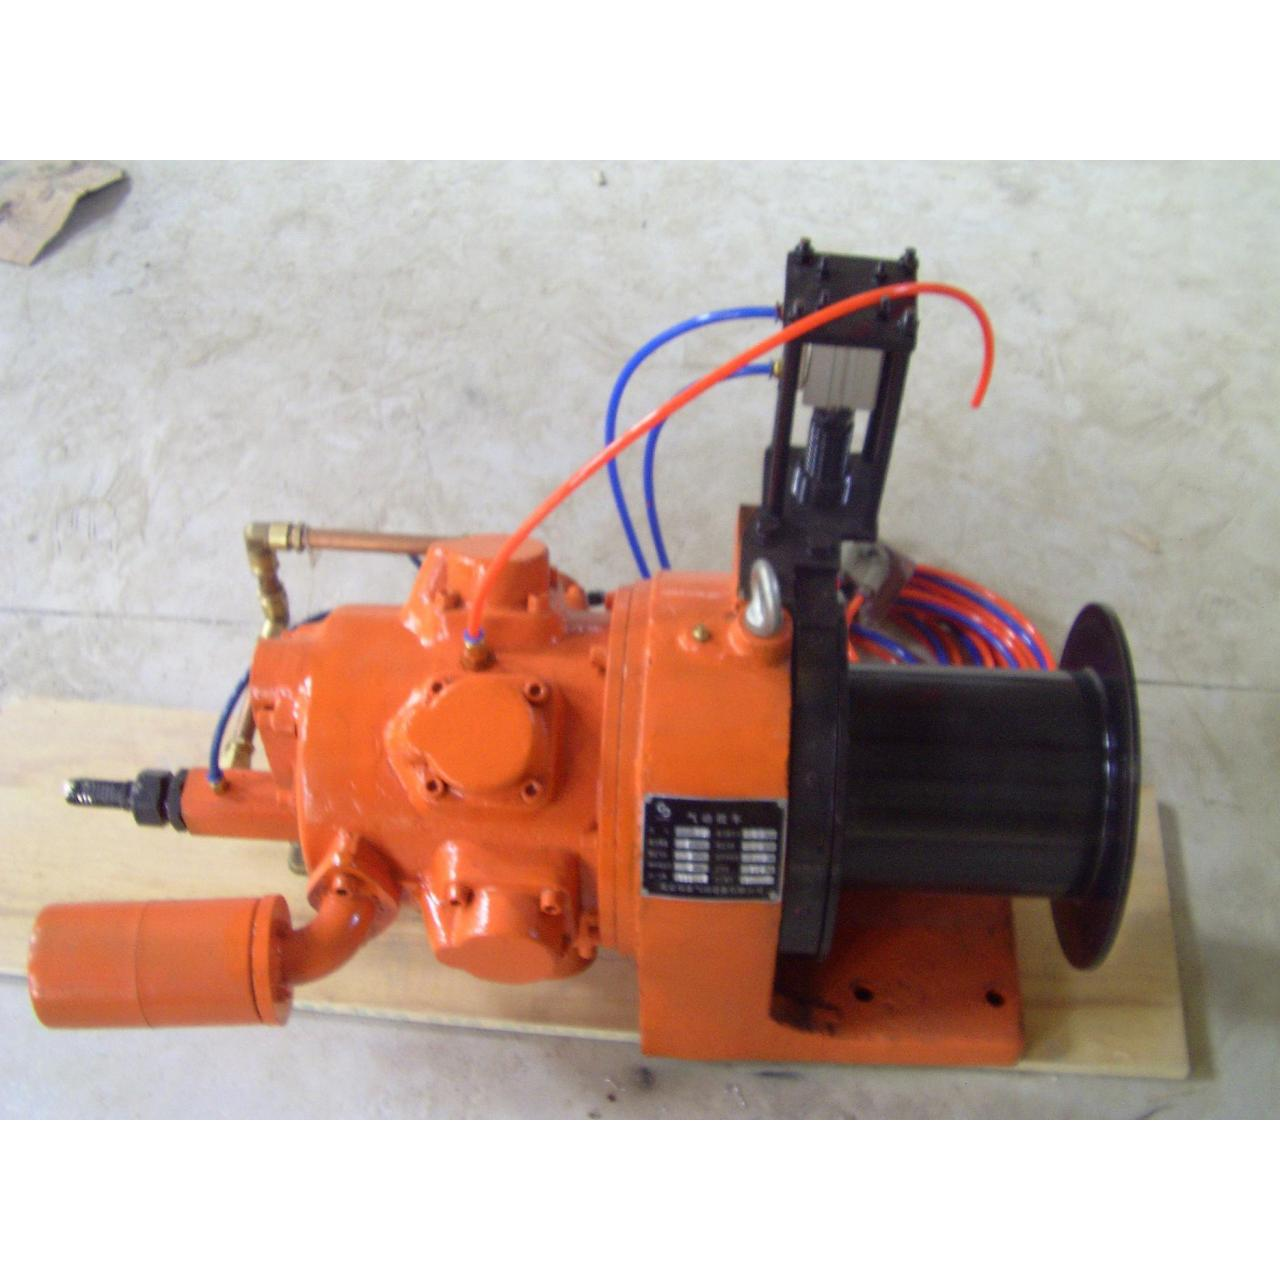 Buy cheap air winch 0.5 ton air winch, pneumatic winch, air tugger from wholesalers